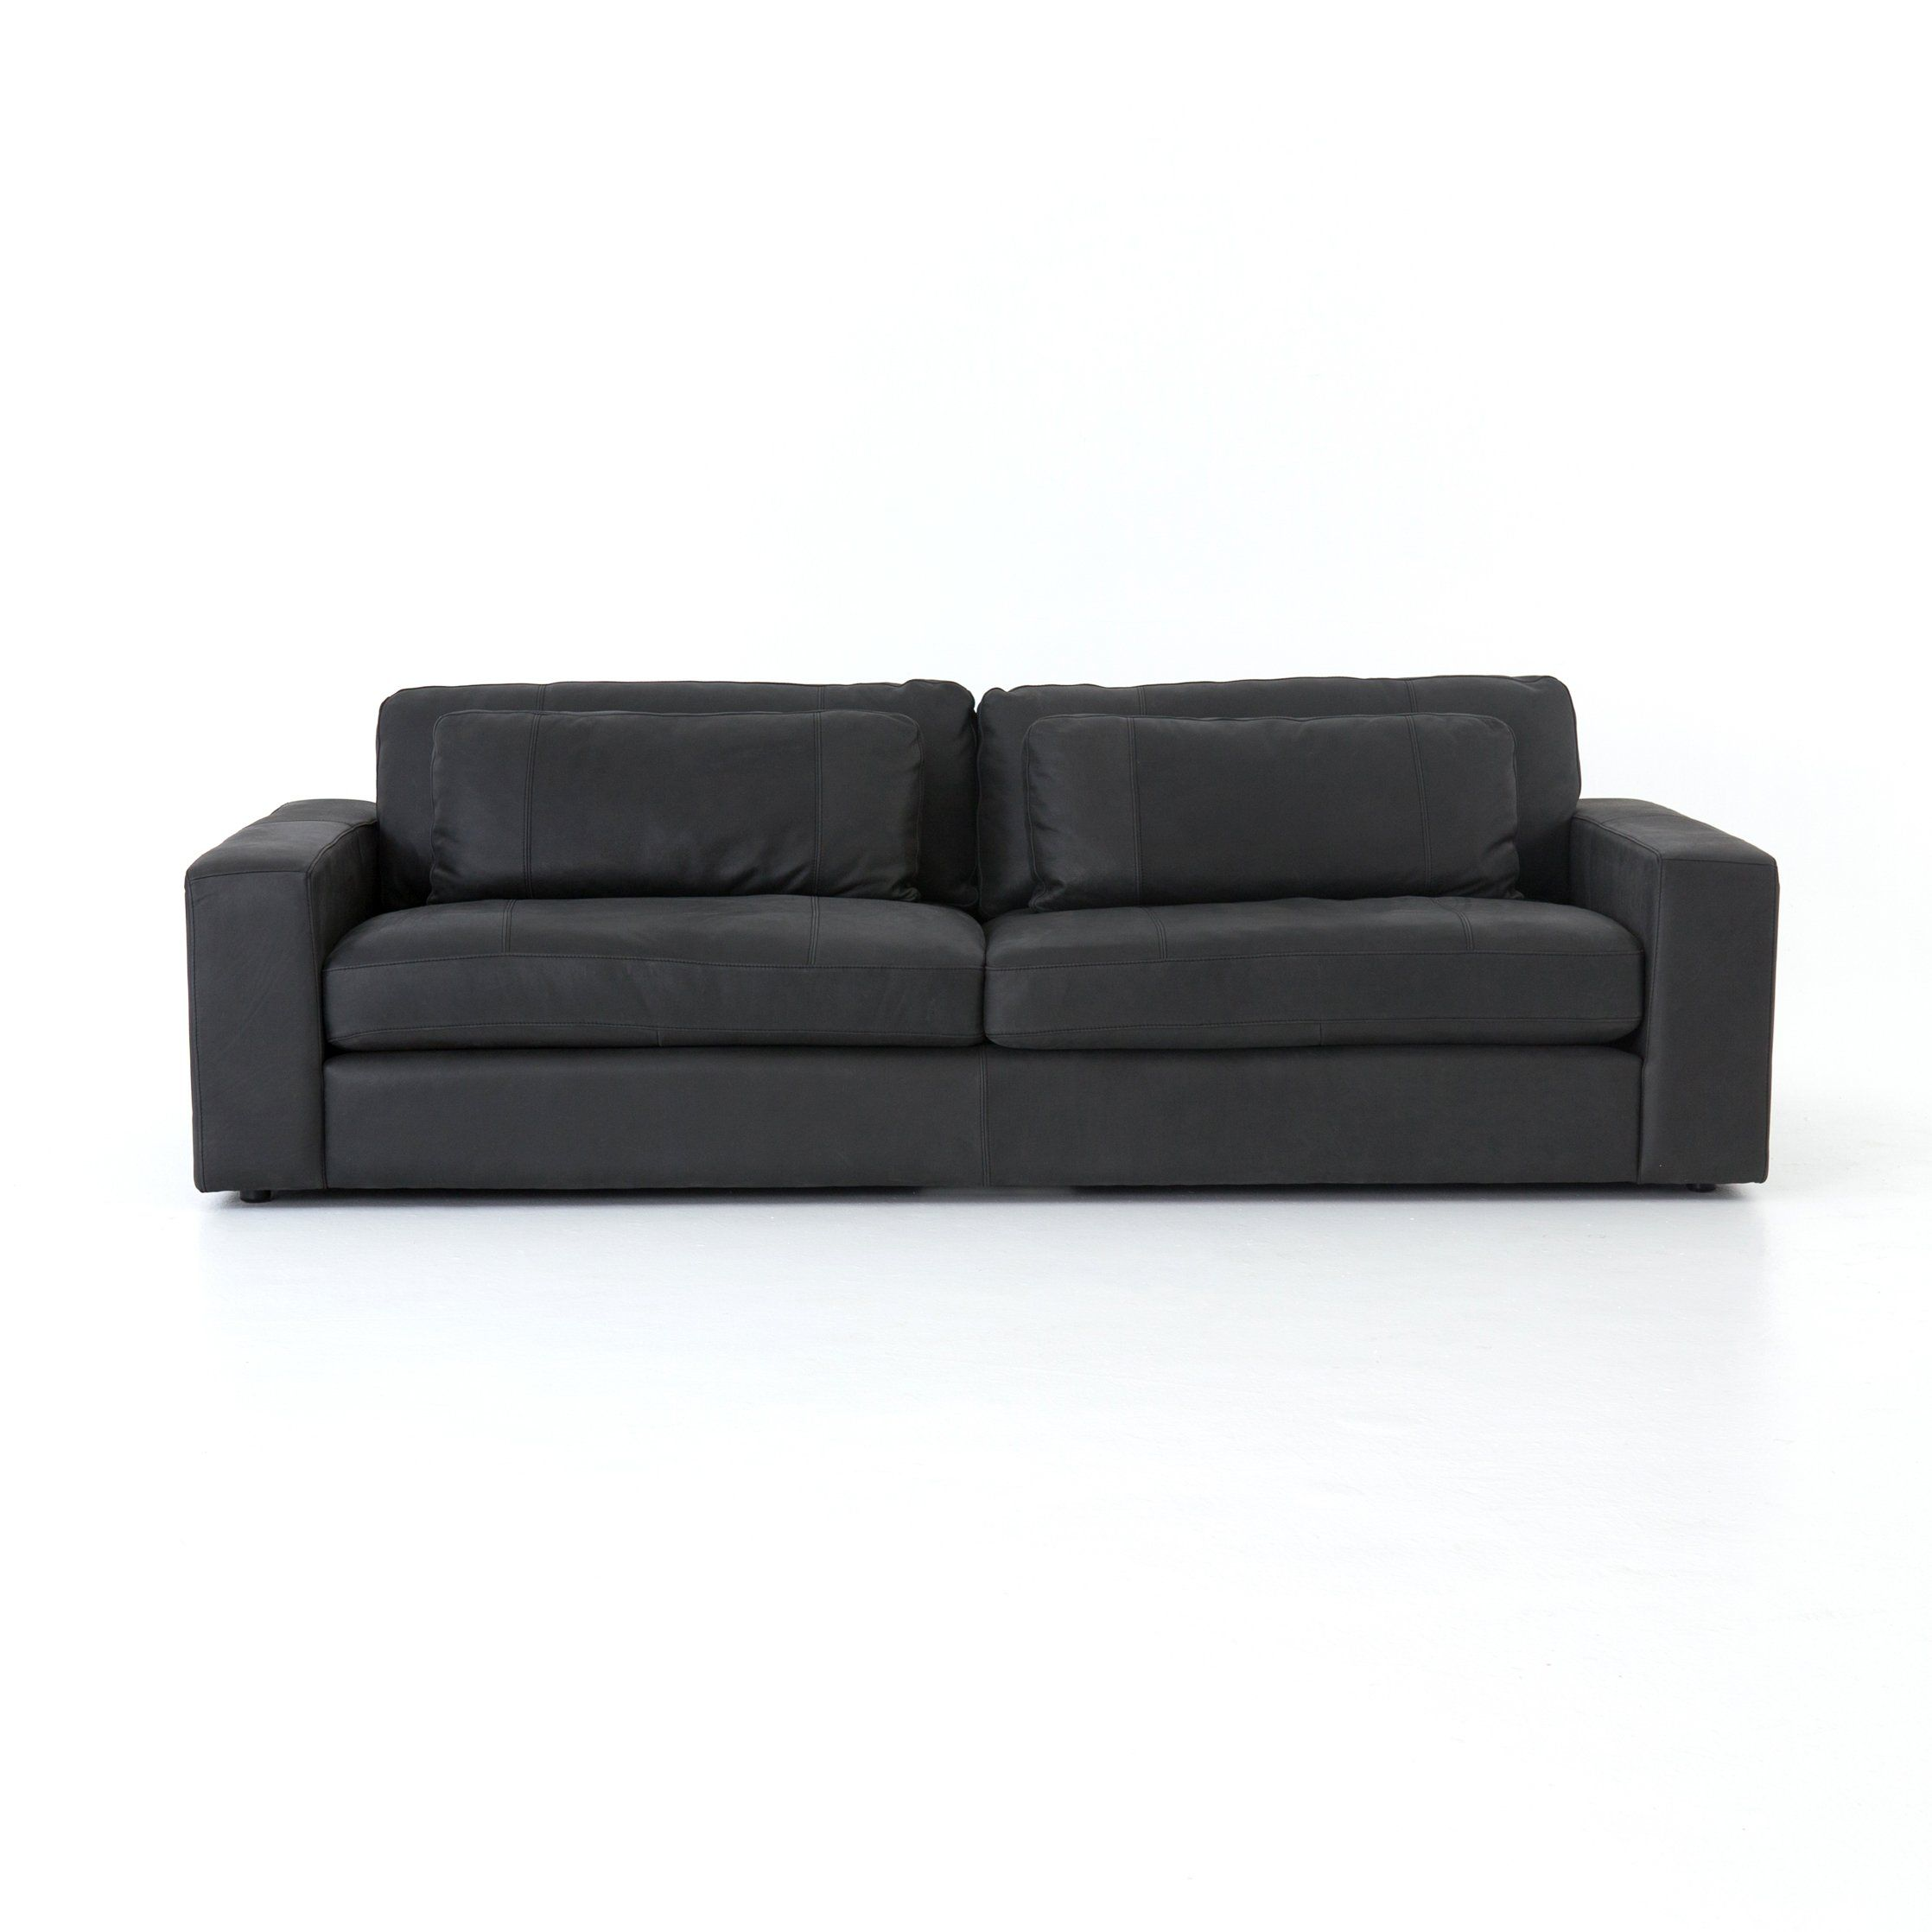 Blair Leather Sofa 98